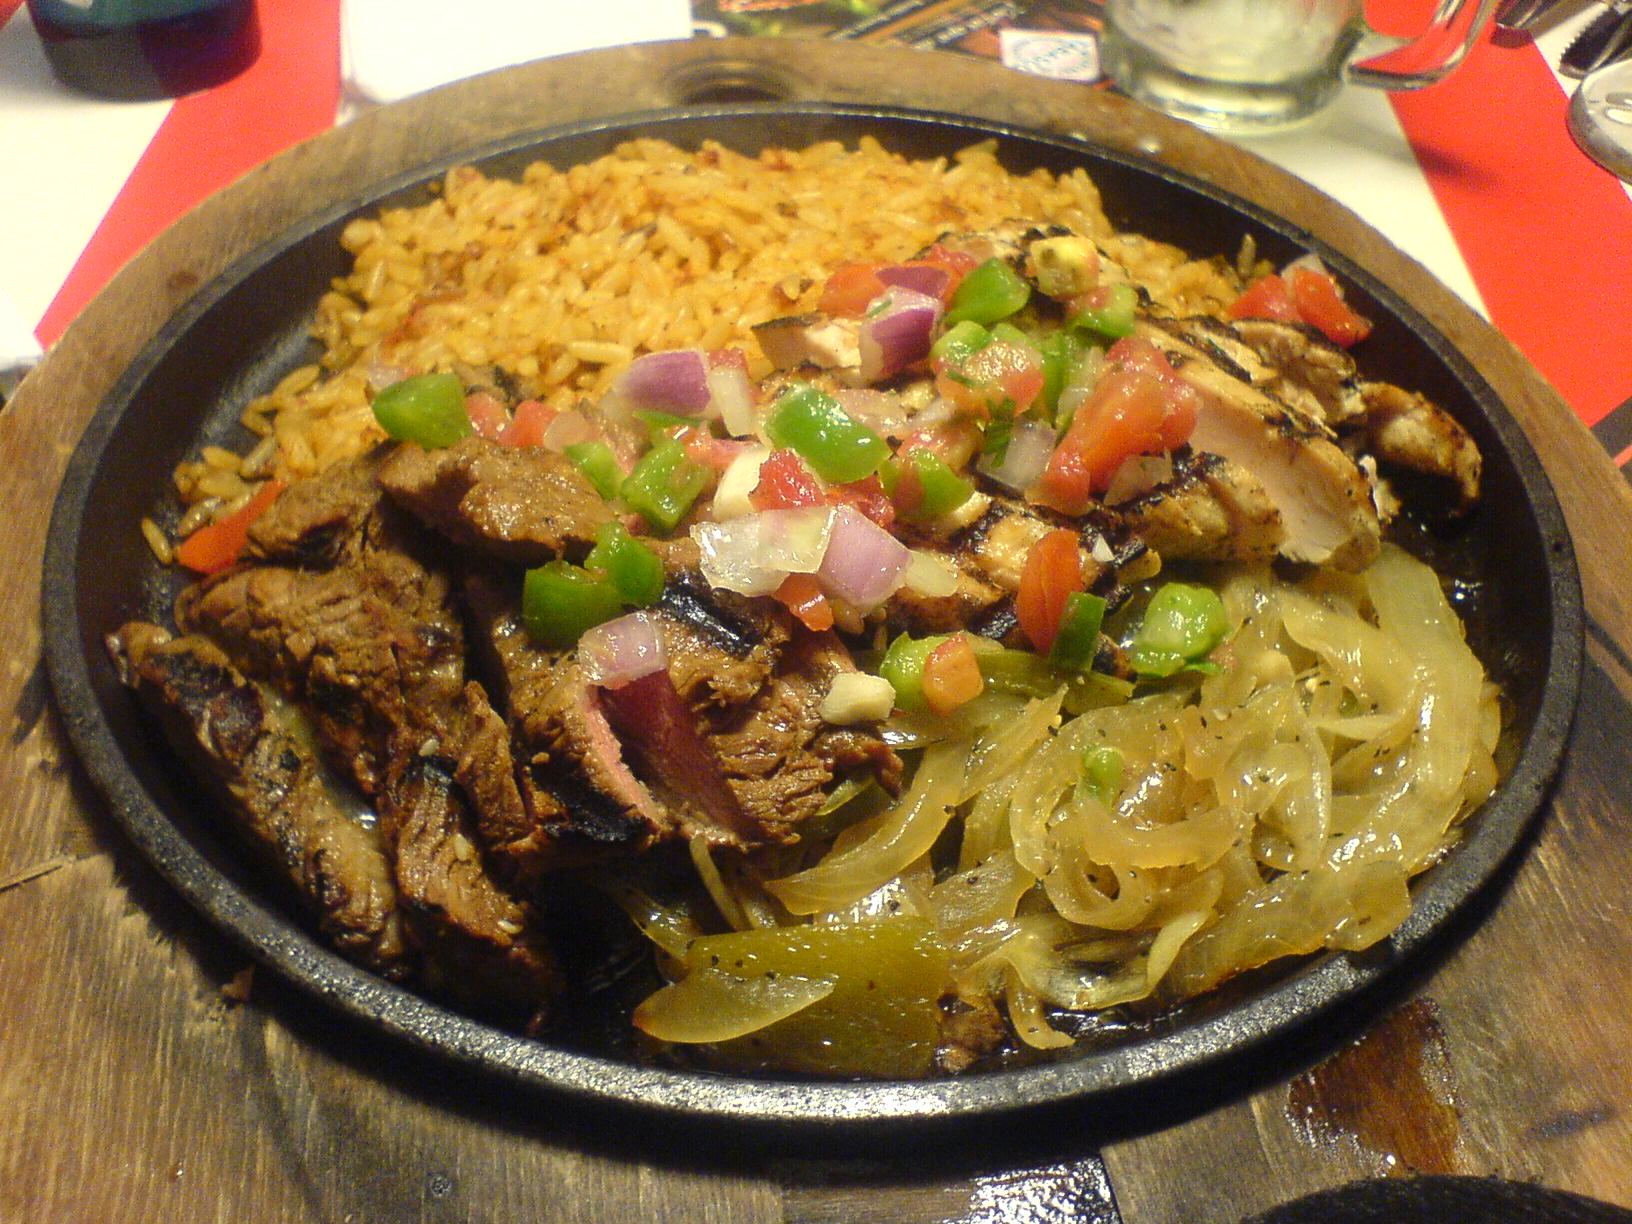 Description Flickr elisart 324248450--Beef and chicken fajitas.jpg